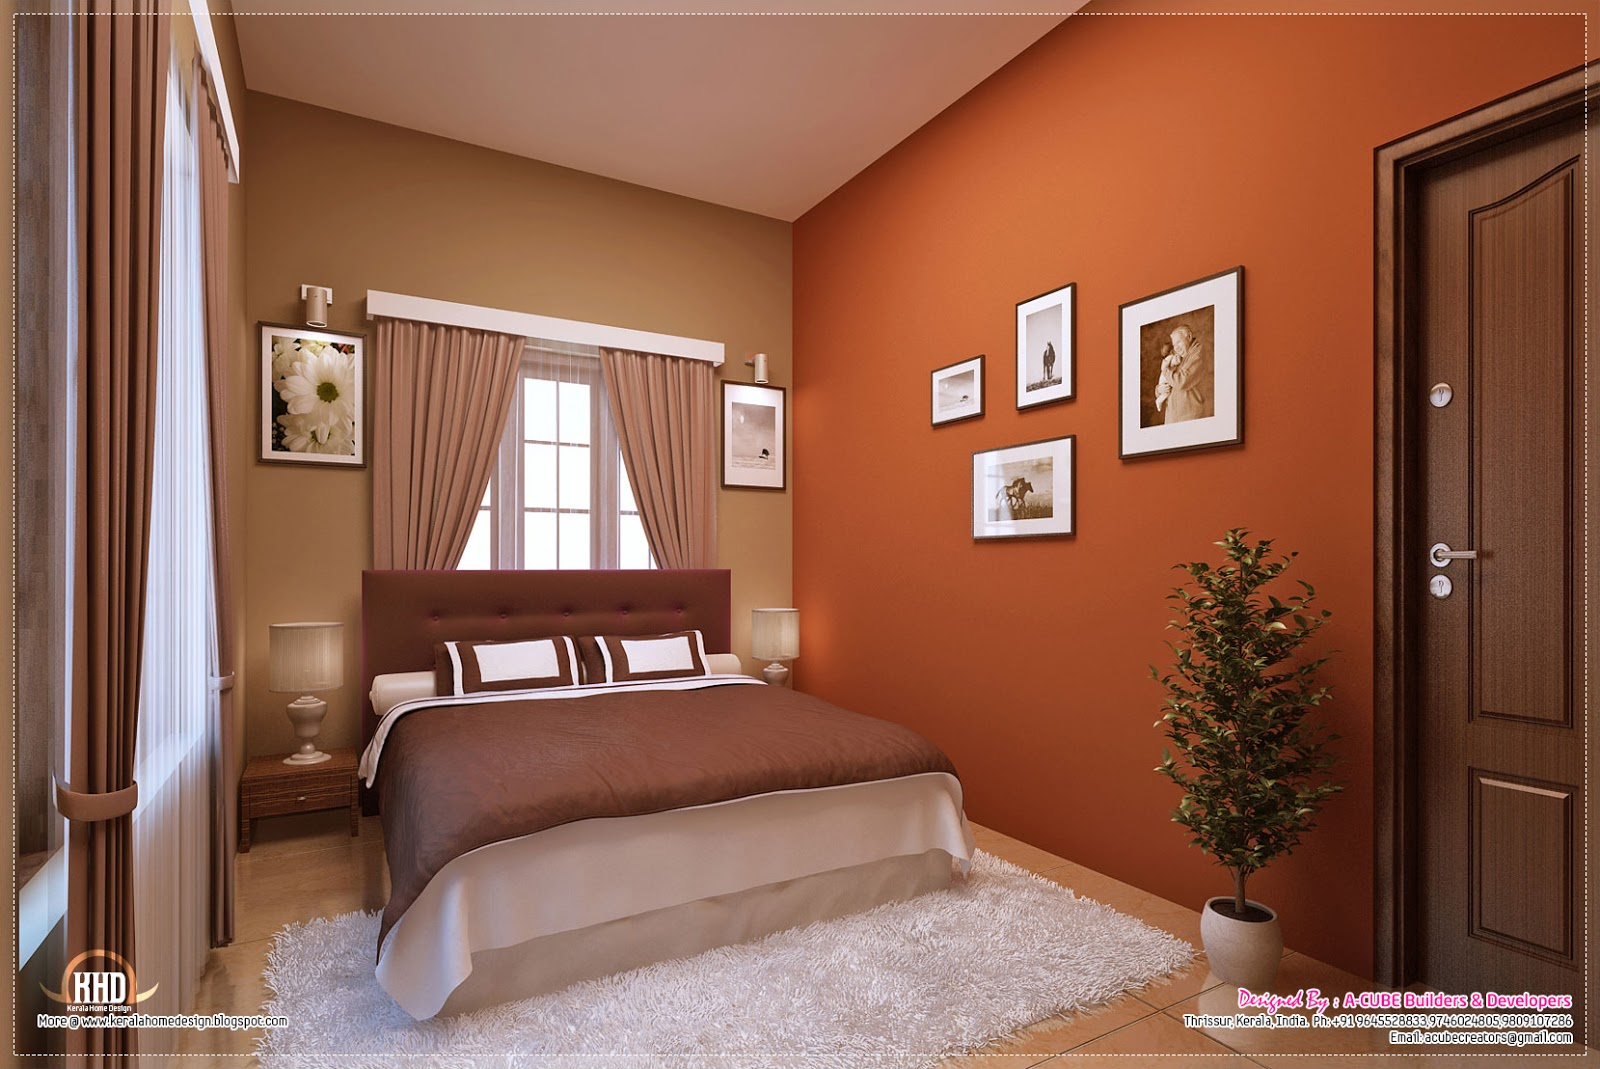 House bedroom interior